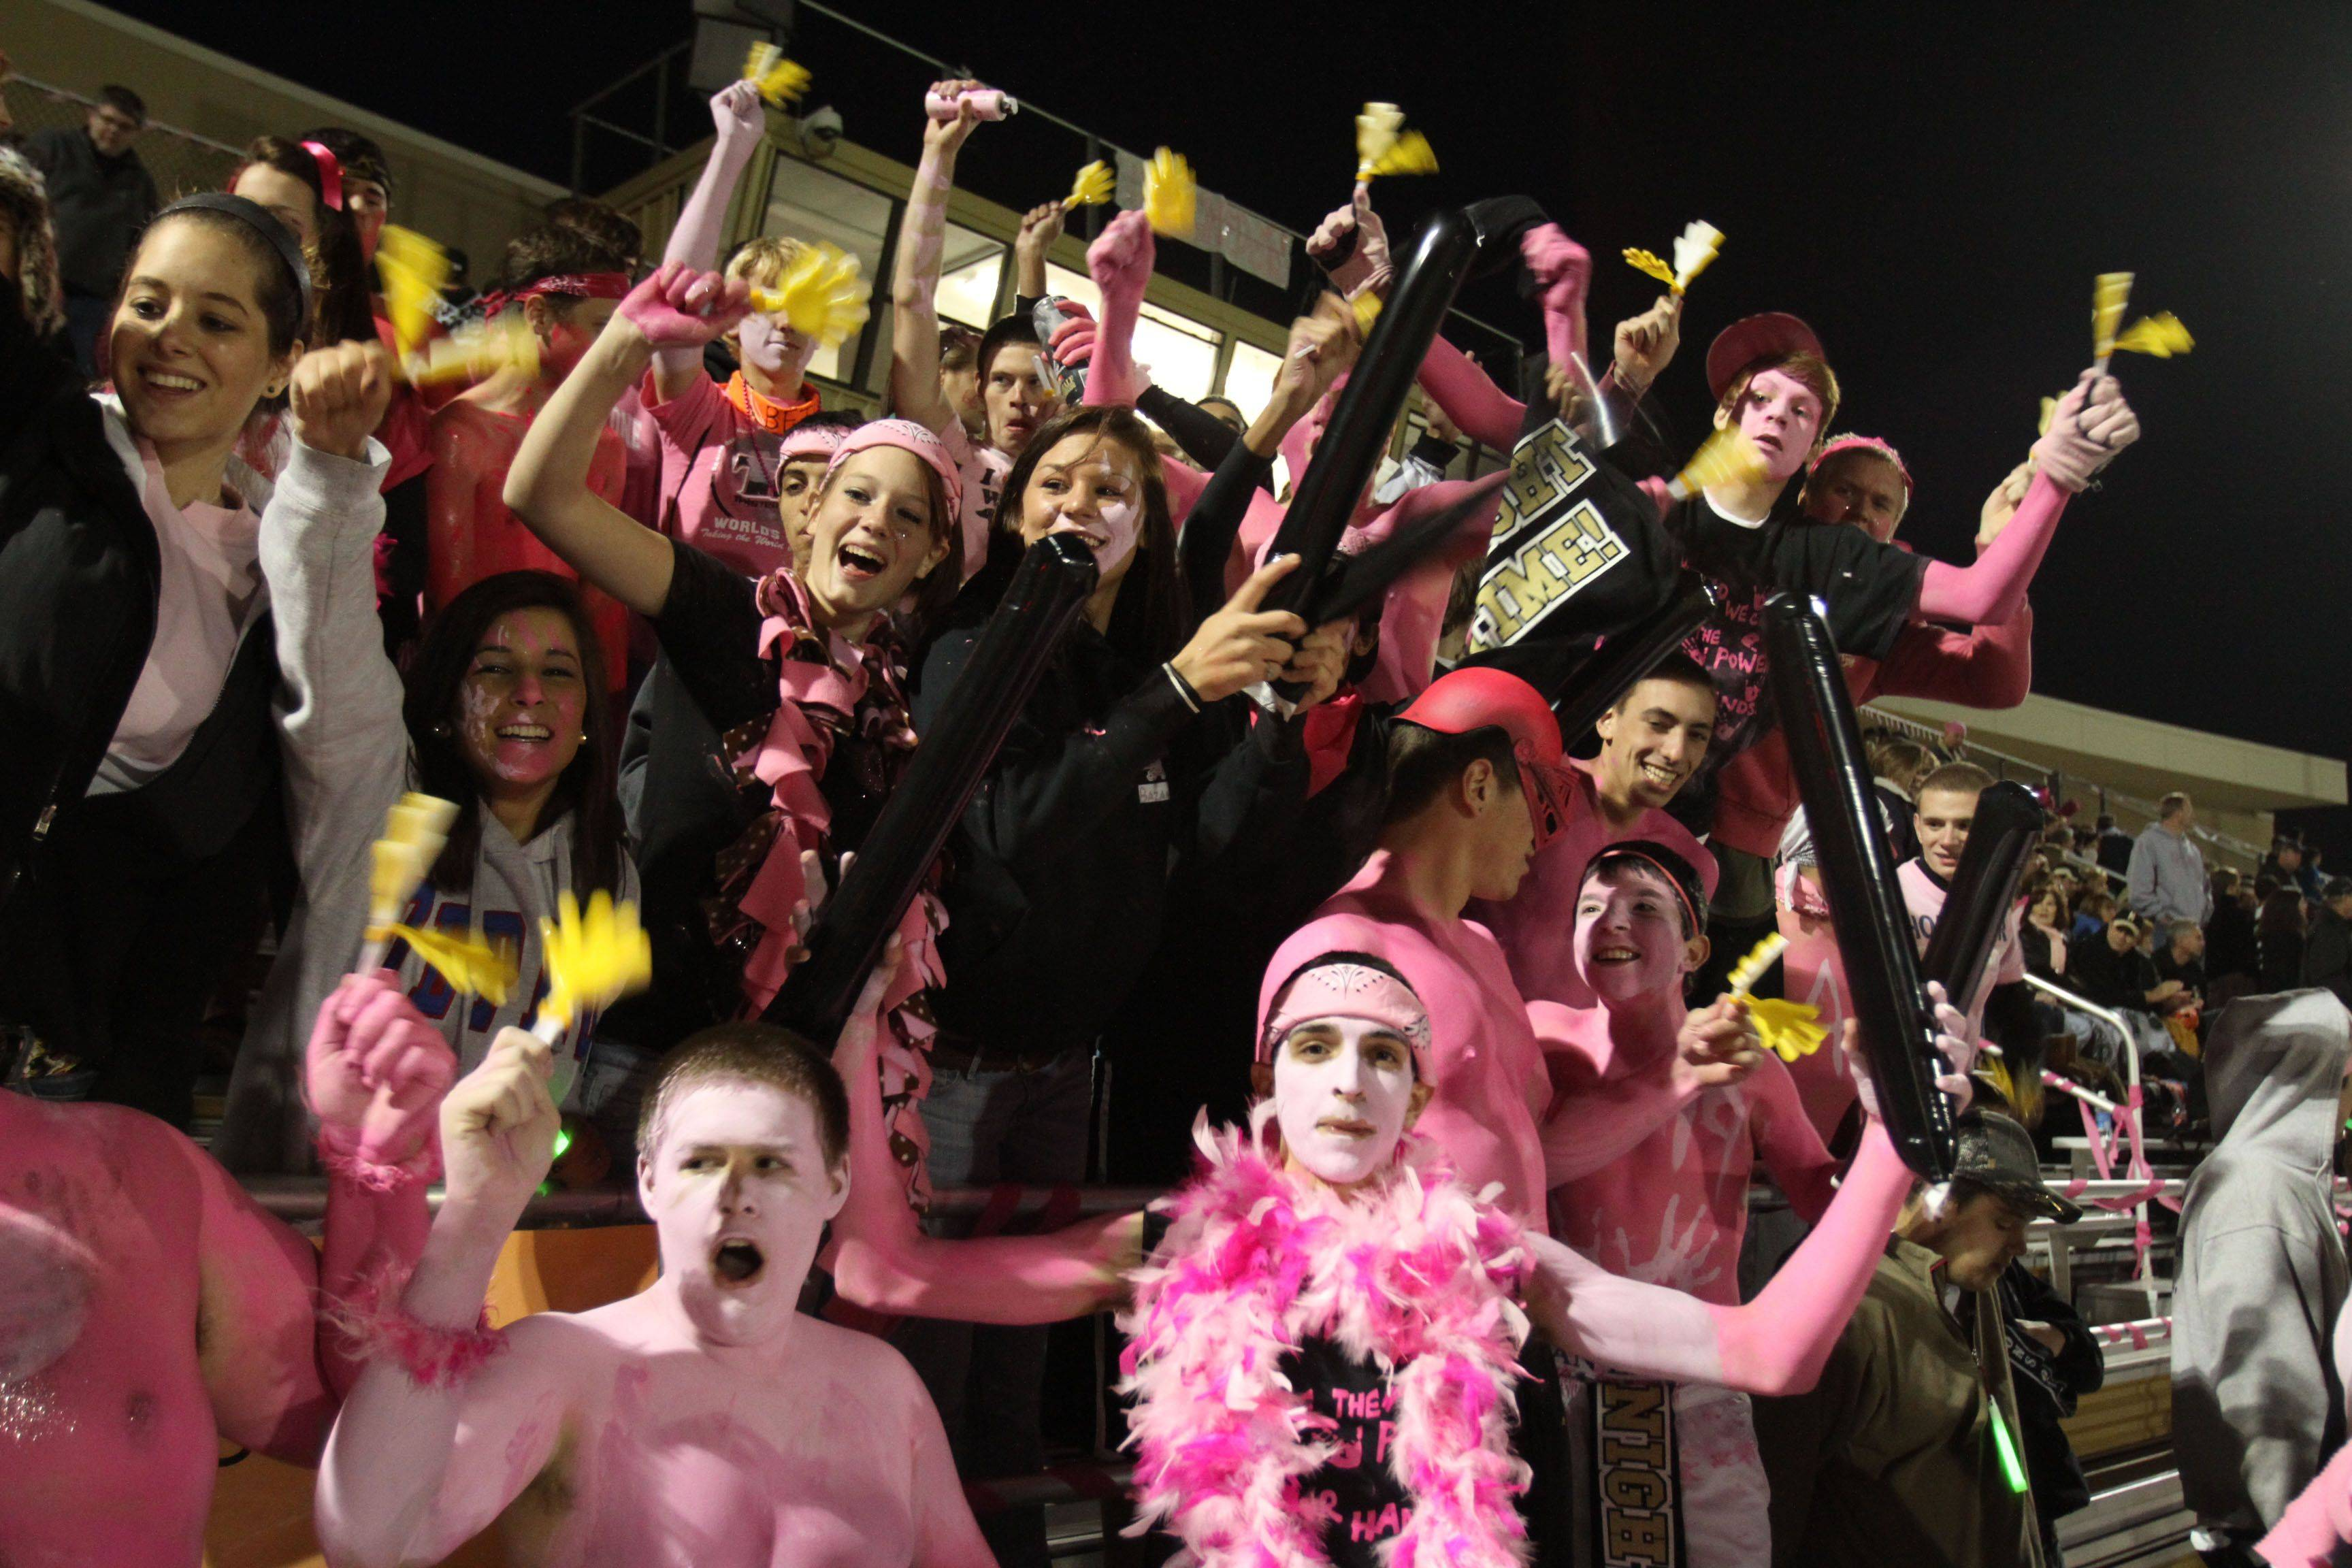 WEEK 8- Grayslake North fans wore pink to watch their team play Grayslake Central.